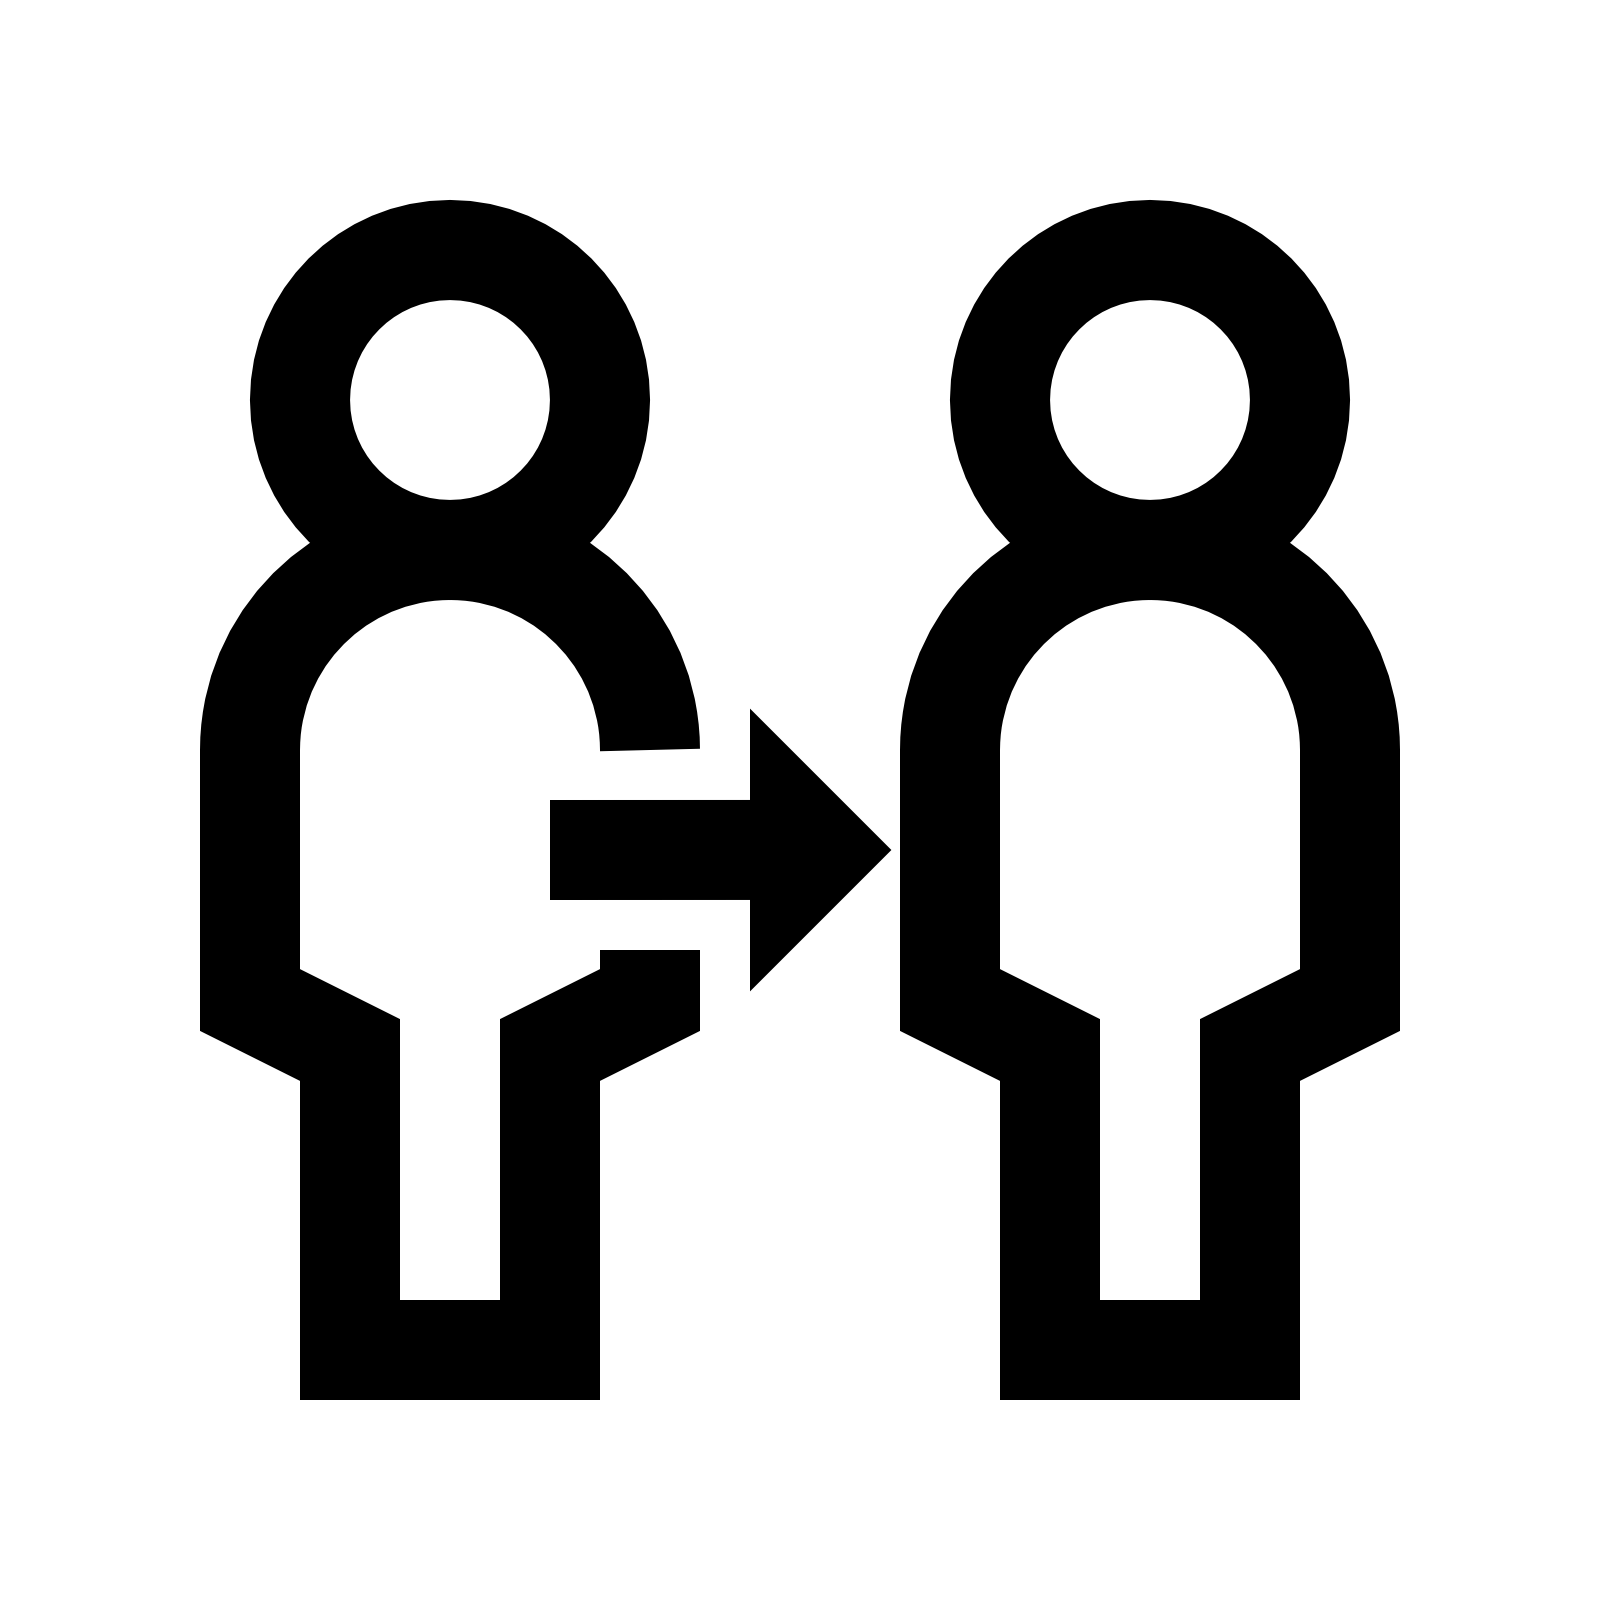 Clone icon - PNG Two People